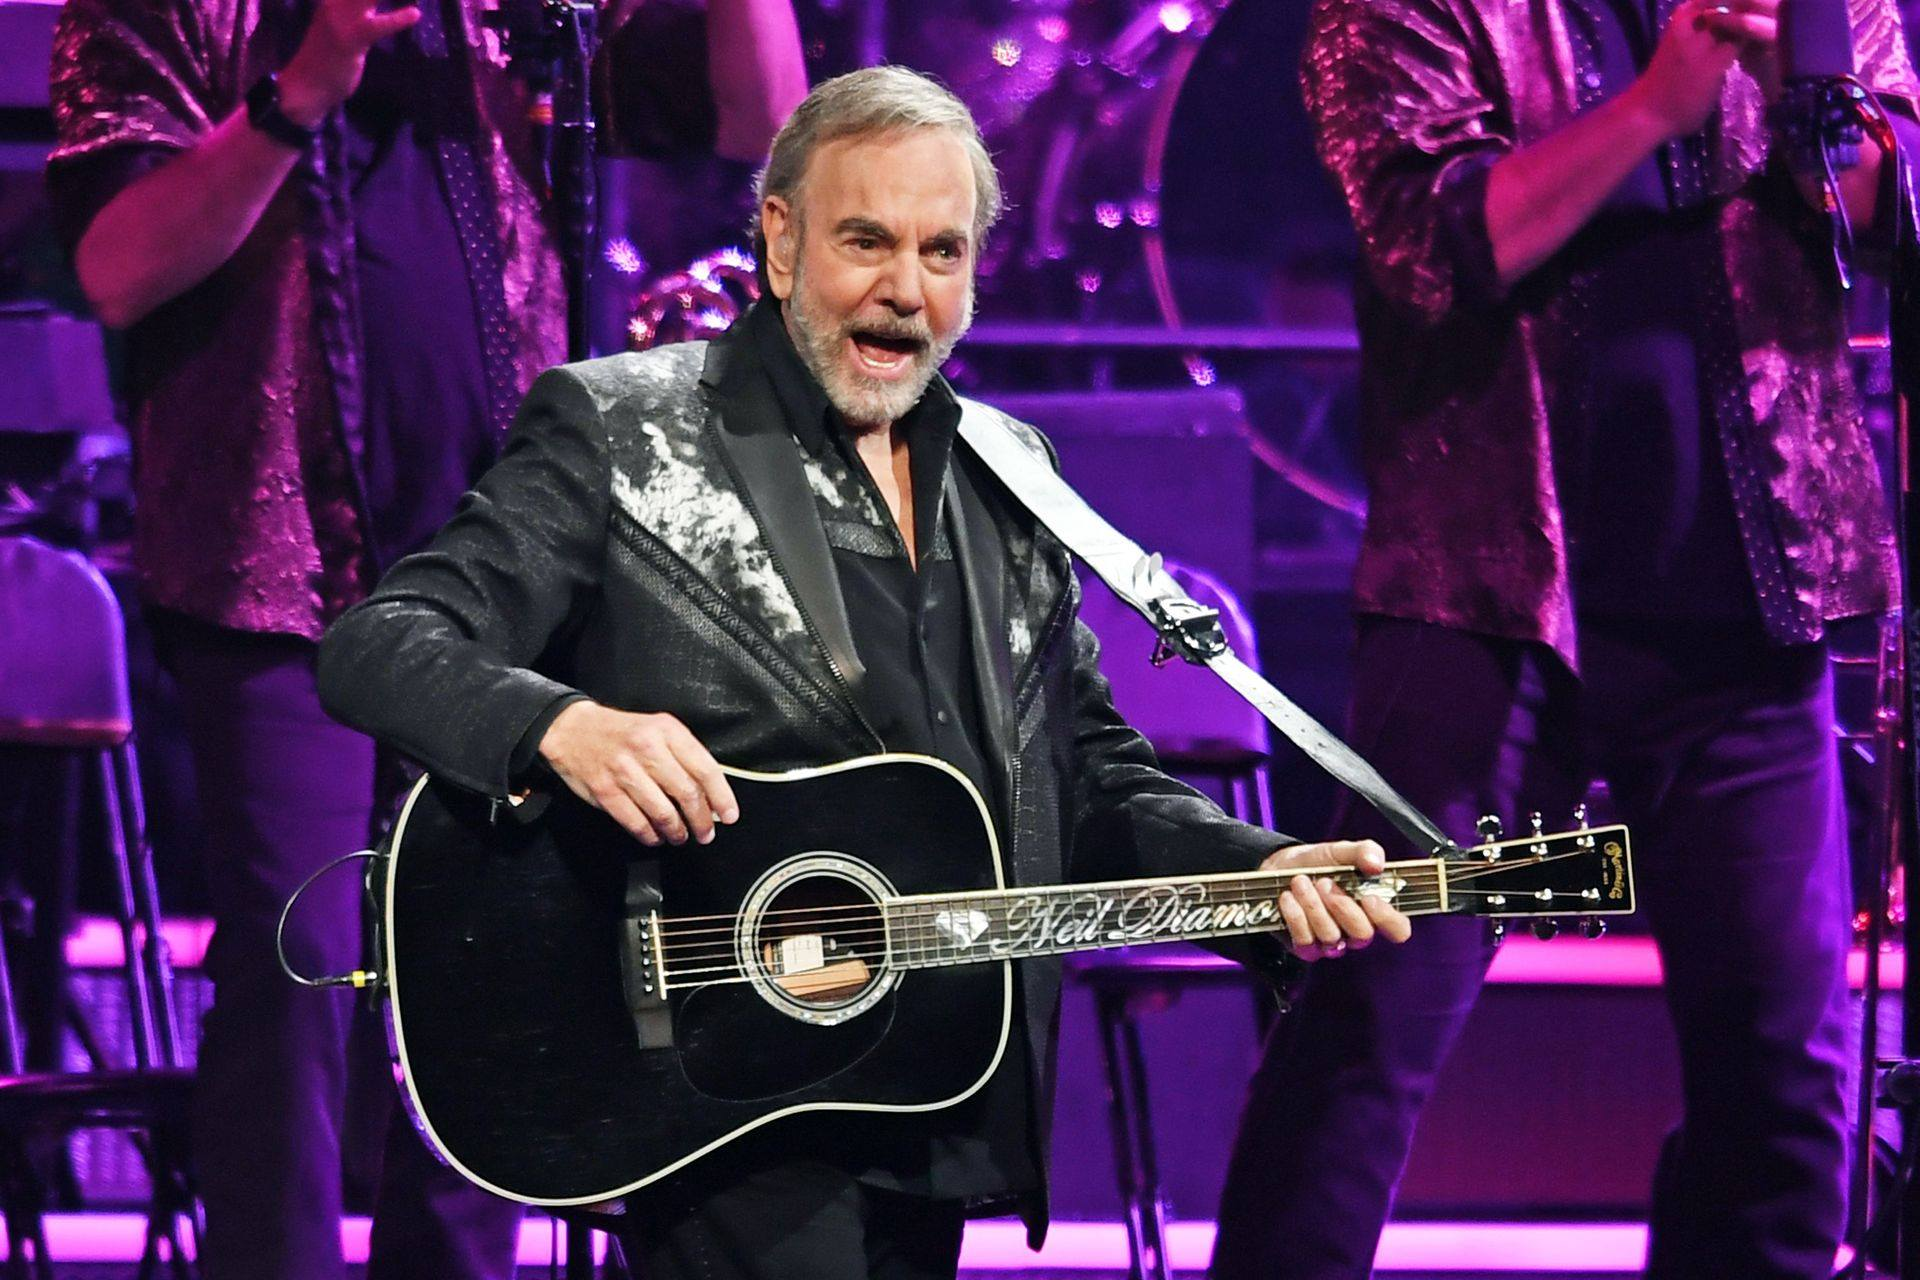 neil diamond performing